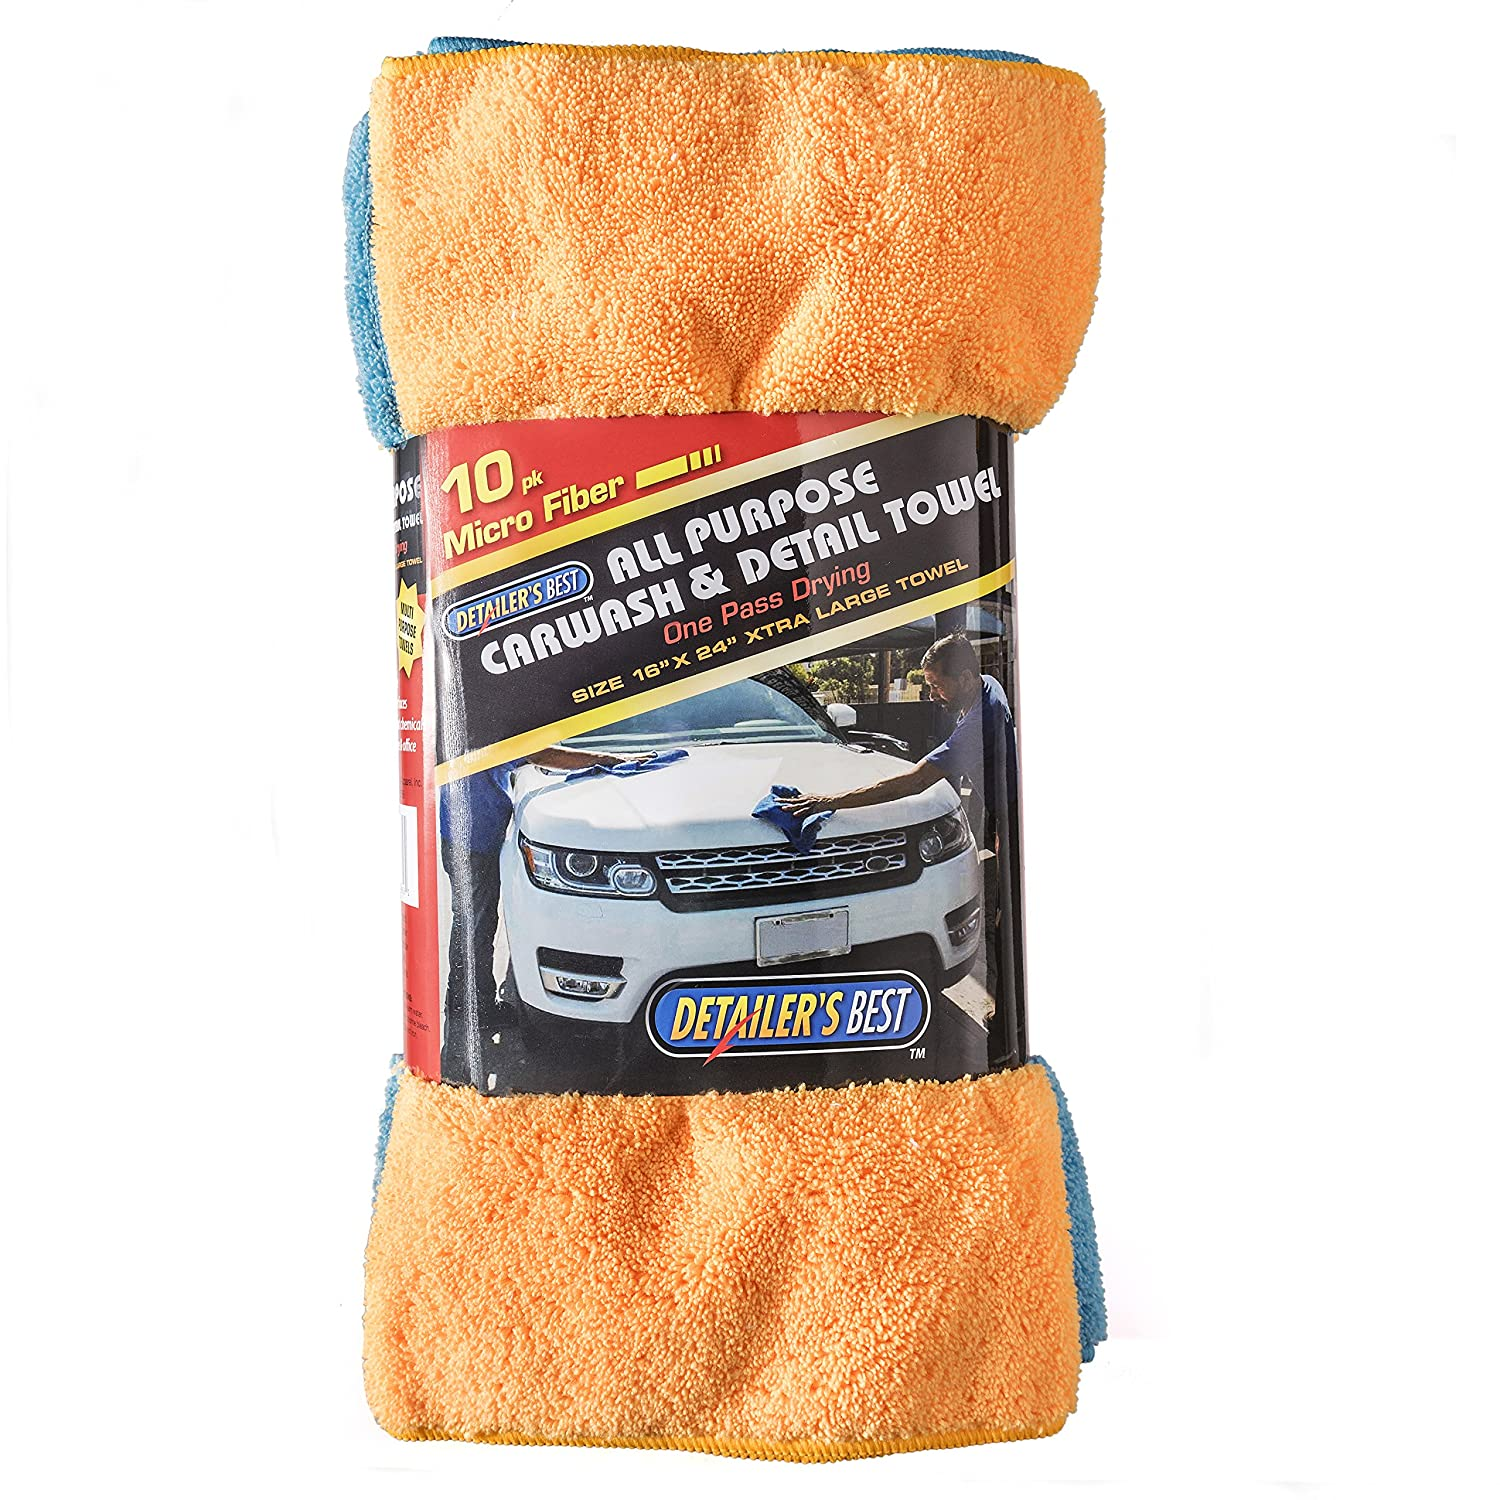 Cleaning Solutions 79104-10 PK Blue/Yellow XL Microfiber Towels (24' x 16') Pack of 10, 10 Pack